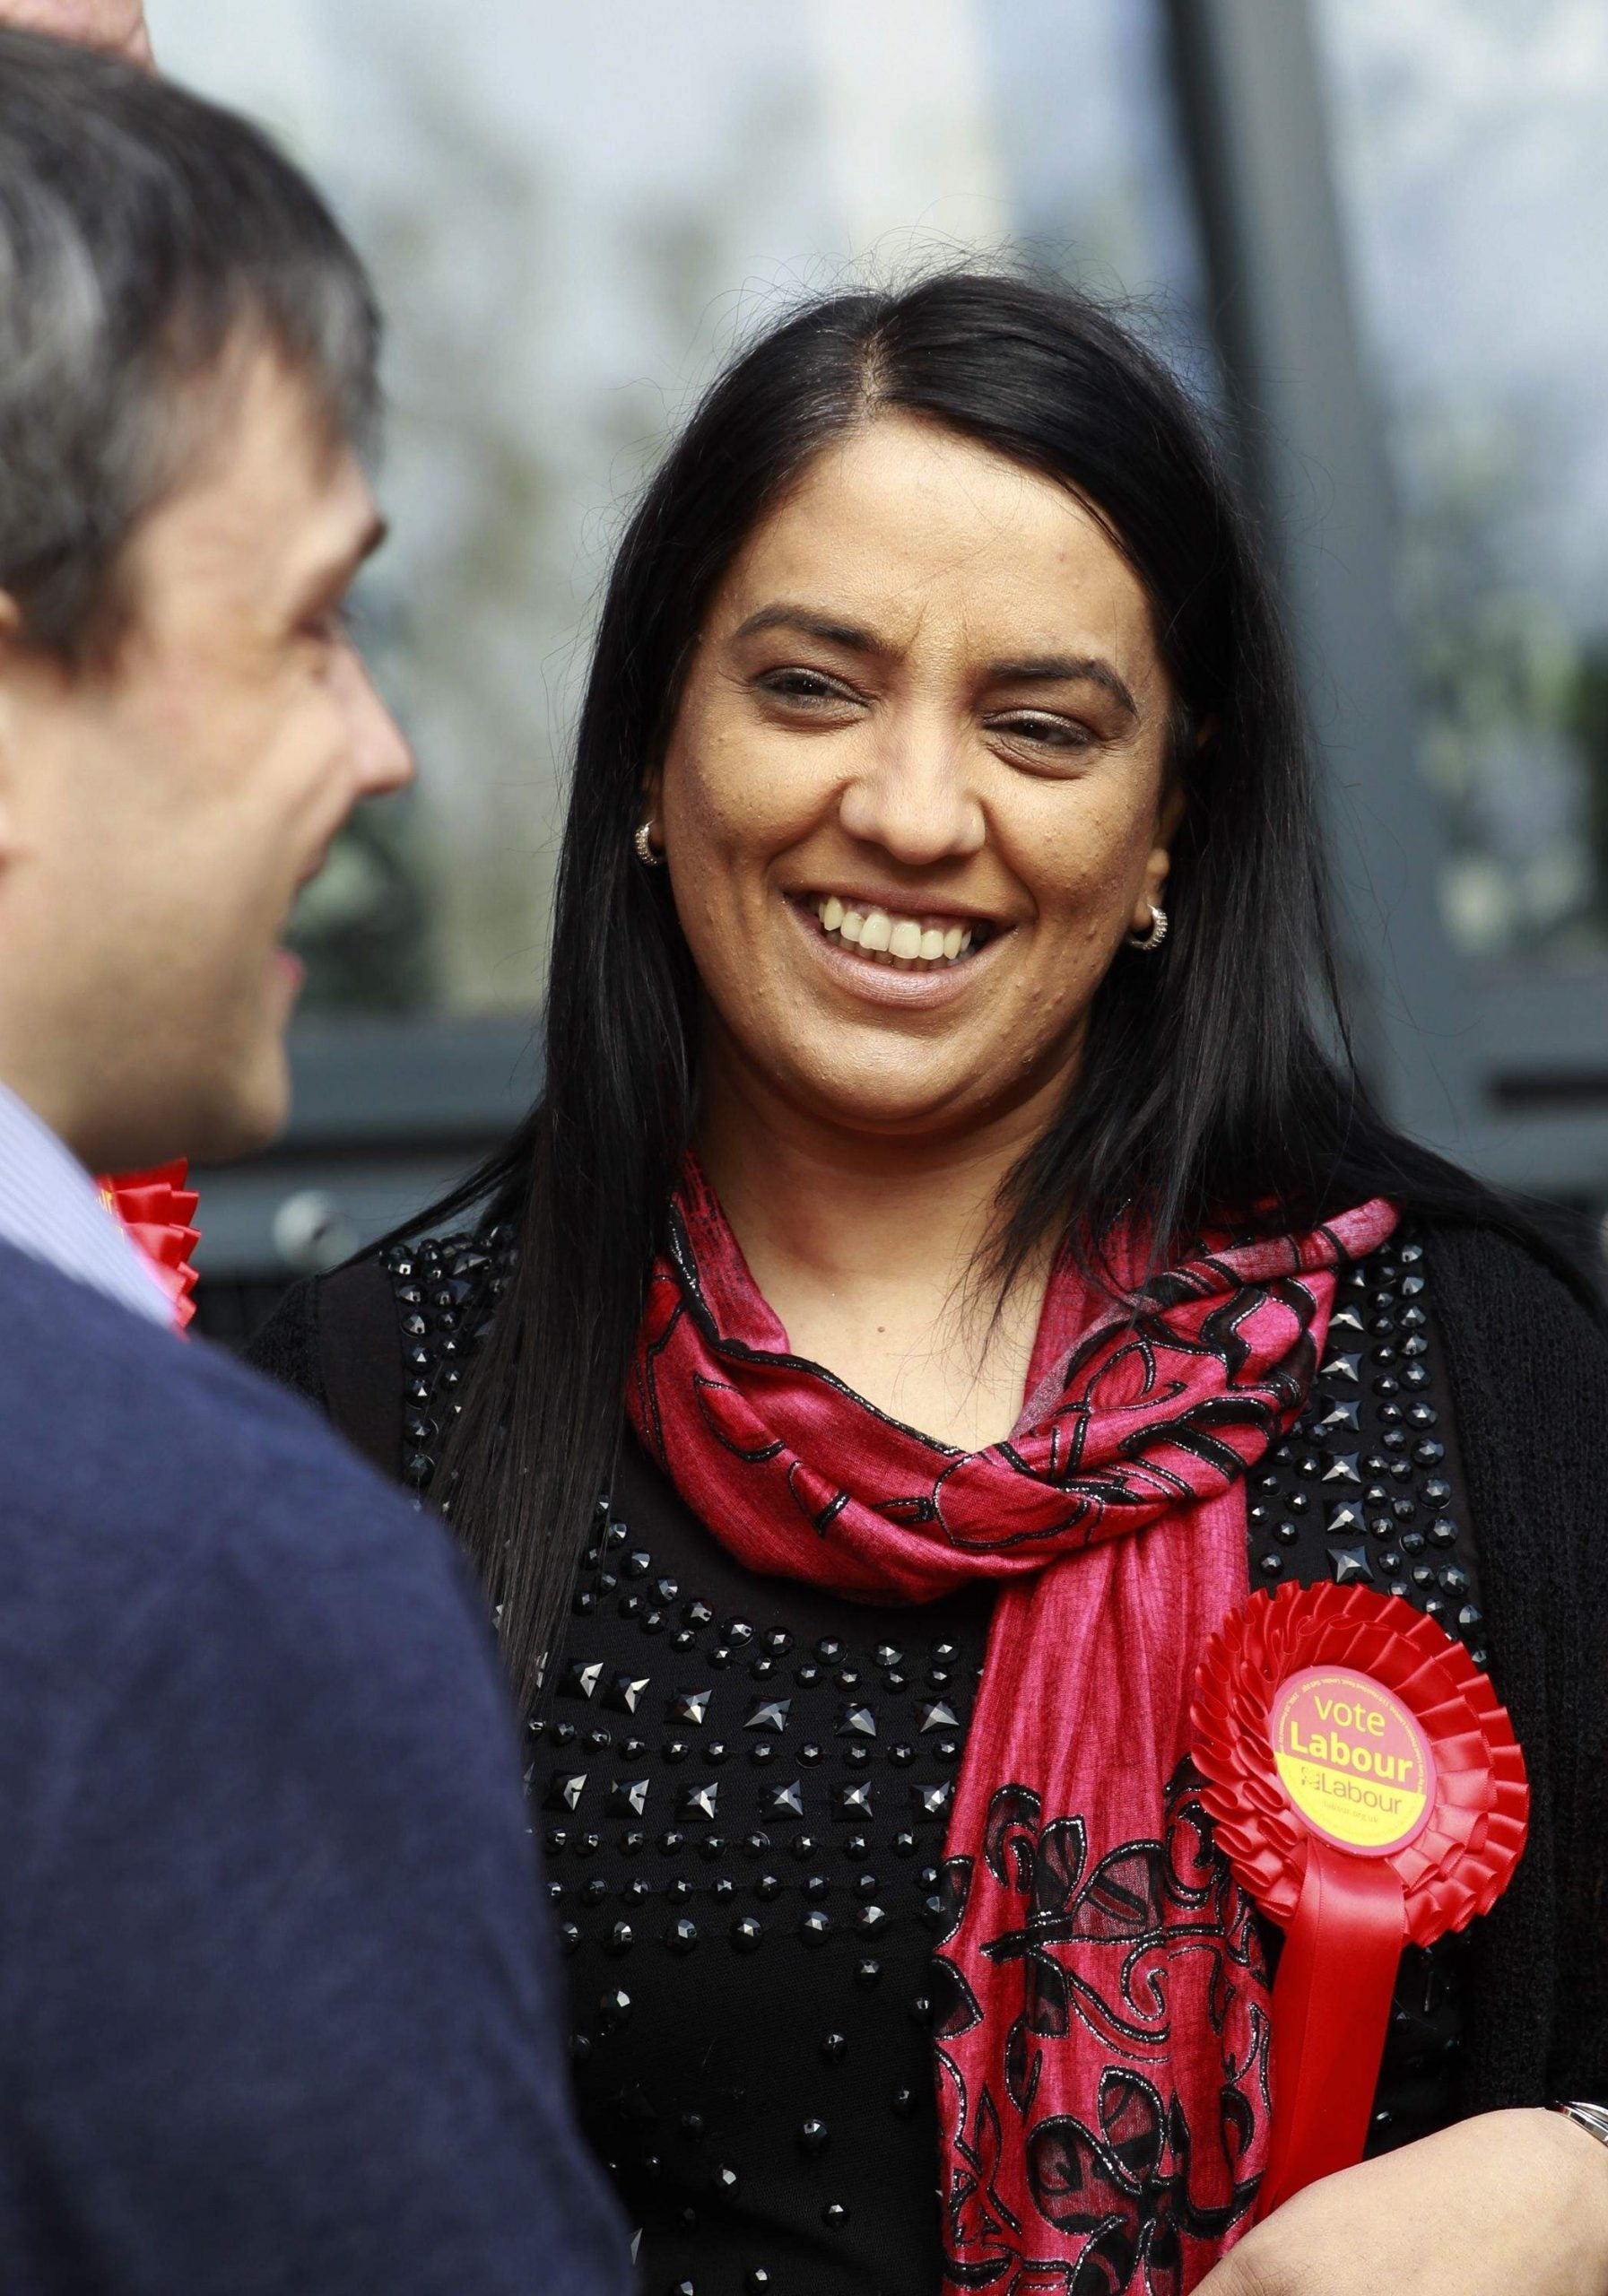 If Labour wants to stamp out anti-Semitism, it should take a lesson from Naz Shah